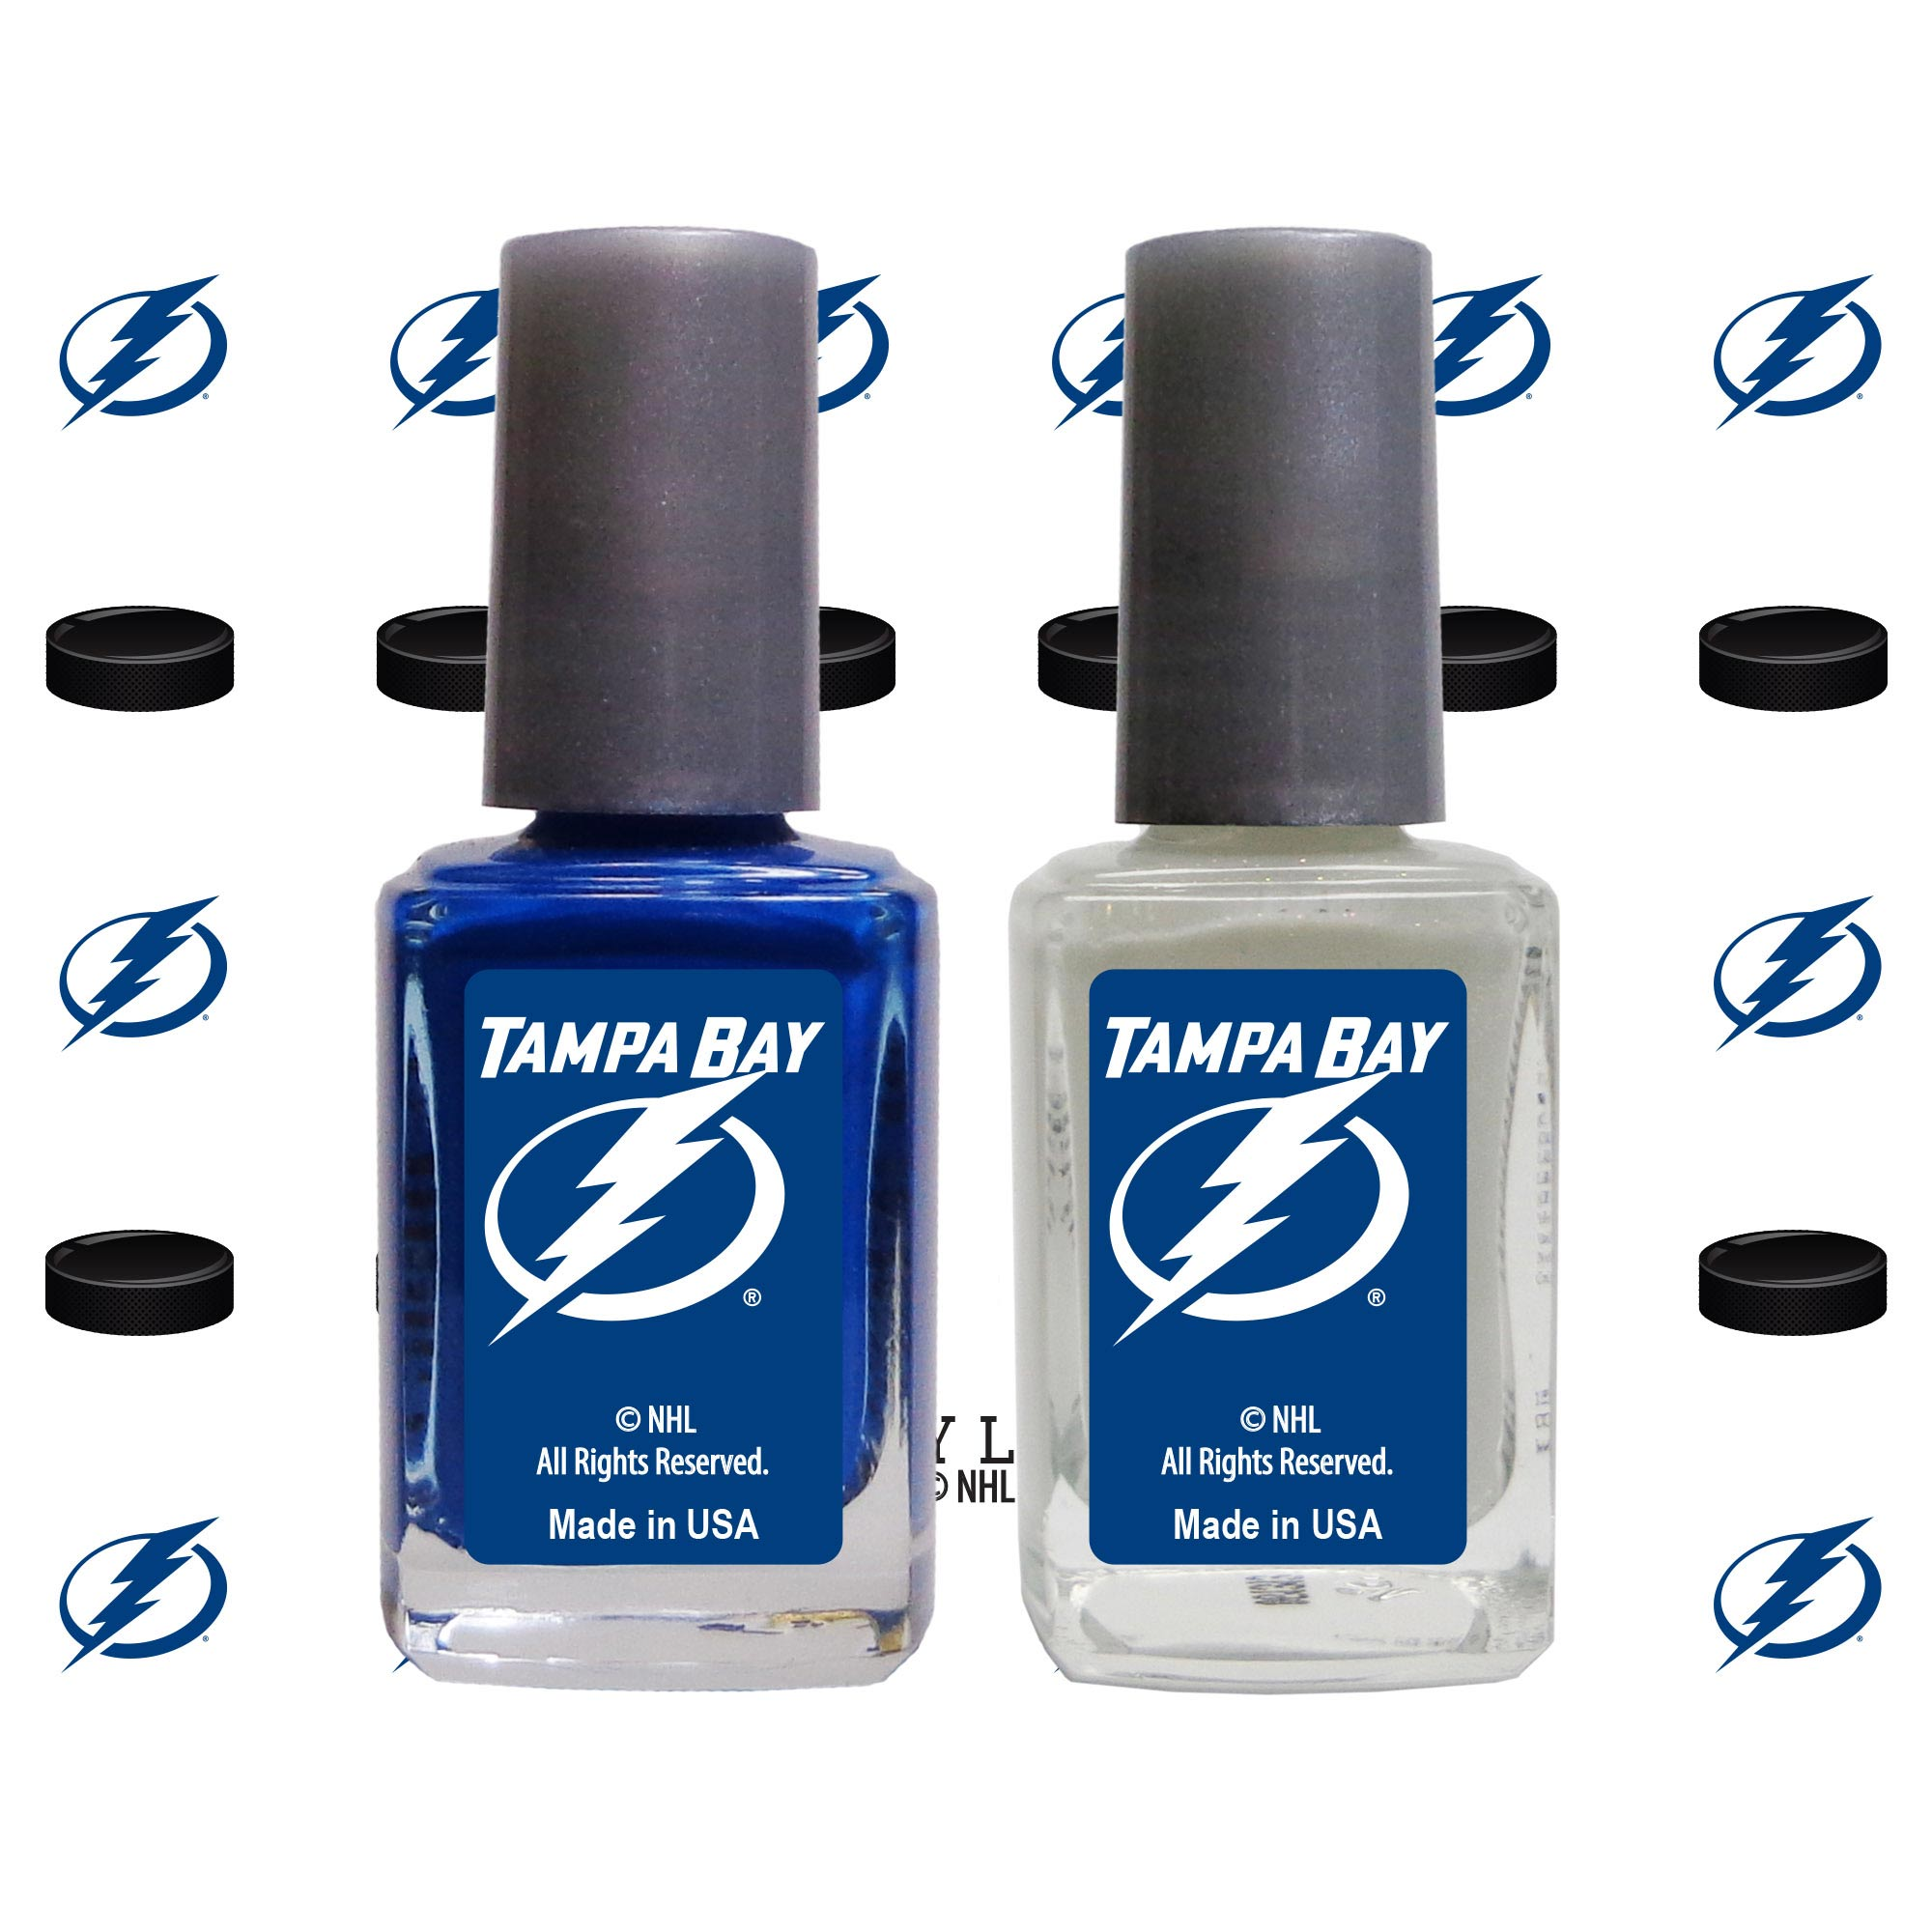 Tampa Bay Lightning 2-Pack Nail Polish with Nail Decal - No Size